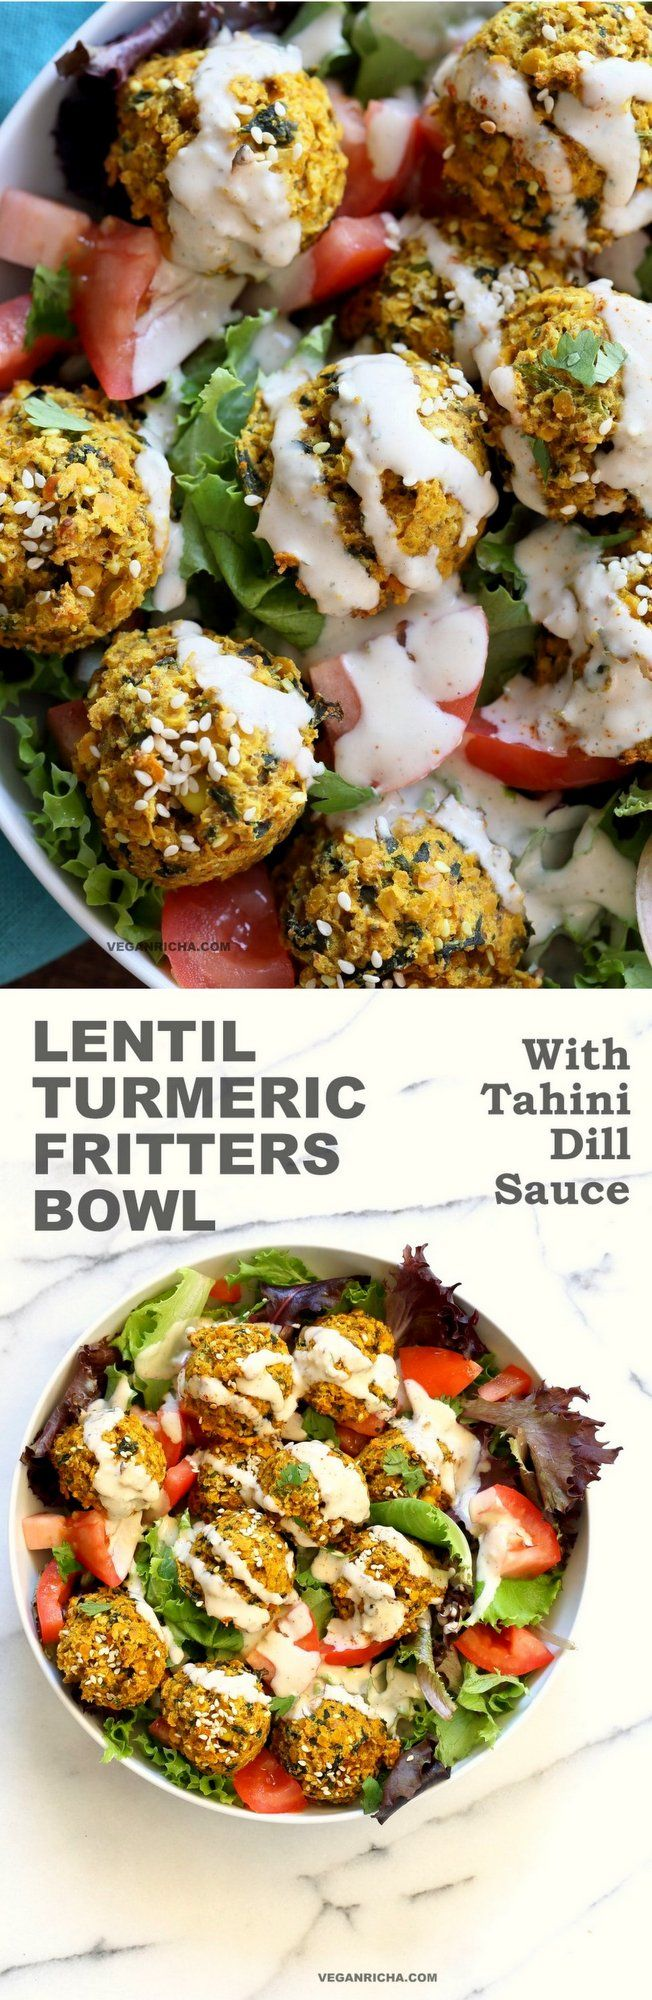 Turmeric Lentil Fritters Tomato Bowl with Tahini Dill Sauce Turmeric Lentil Fritters Tomato Greens Bowl with Tahini Dill Sauce. Baked Seedy Golden Lentil fritters with greens, tomatoes and a tahini sauce